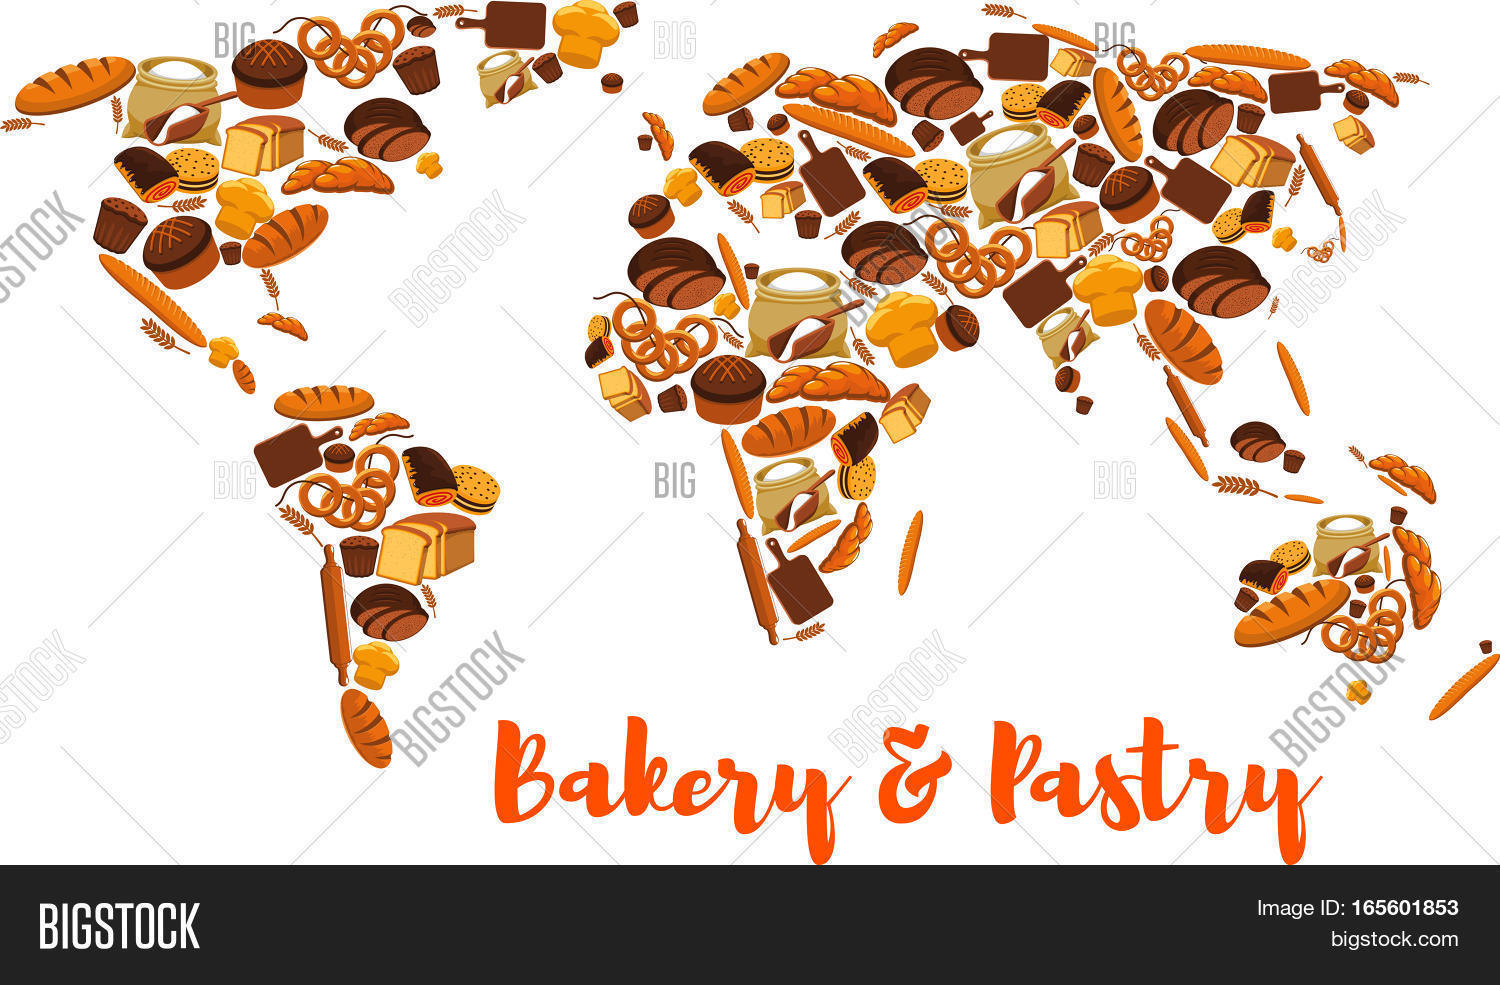 Bread world map bakery pastry vector photo bigstock bread world map bakery and pastry symbol or poster of wheat and rye ears and gumiabroncs Choice Image